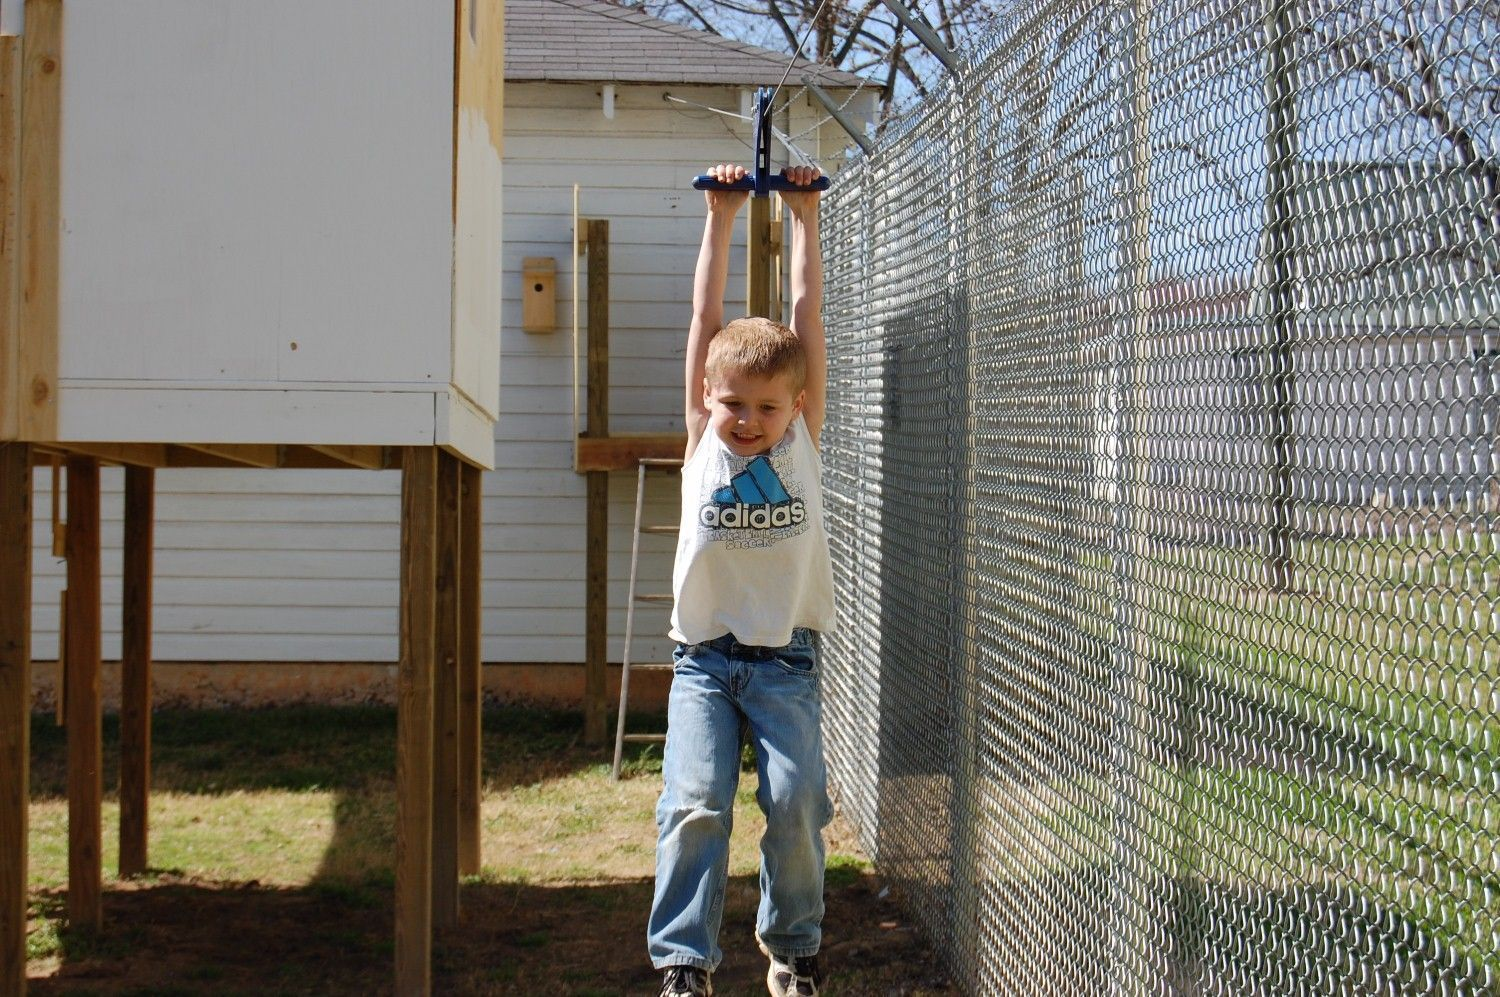 Zip line in our backyard. Great idea for the kids! They ...